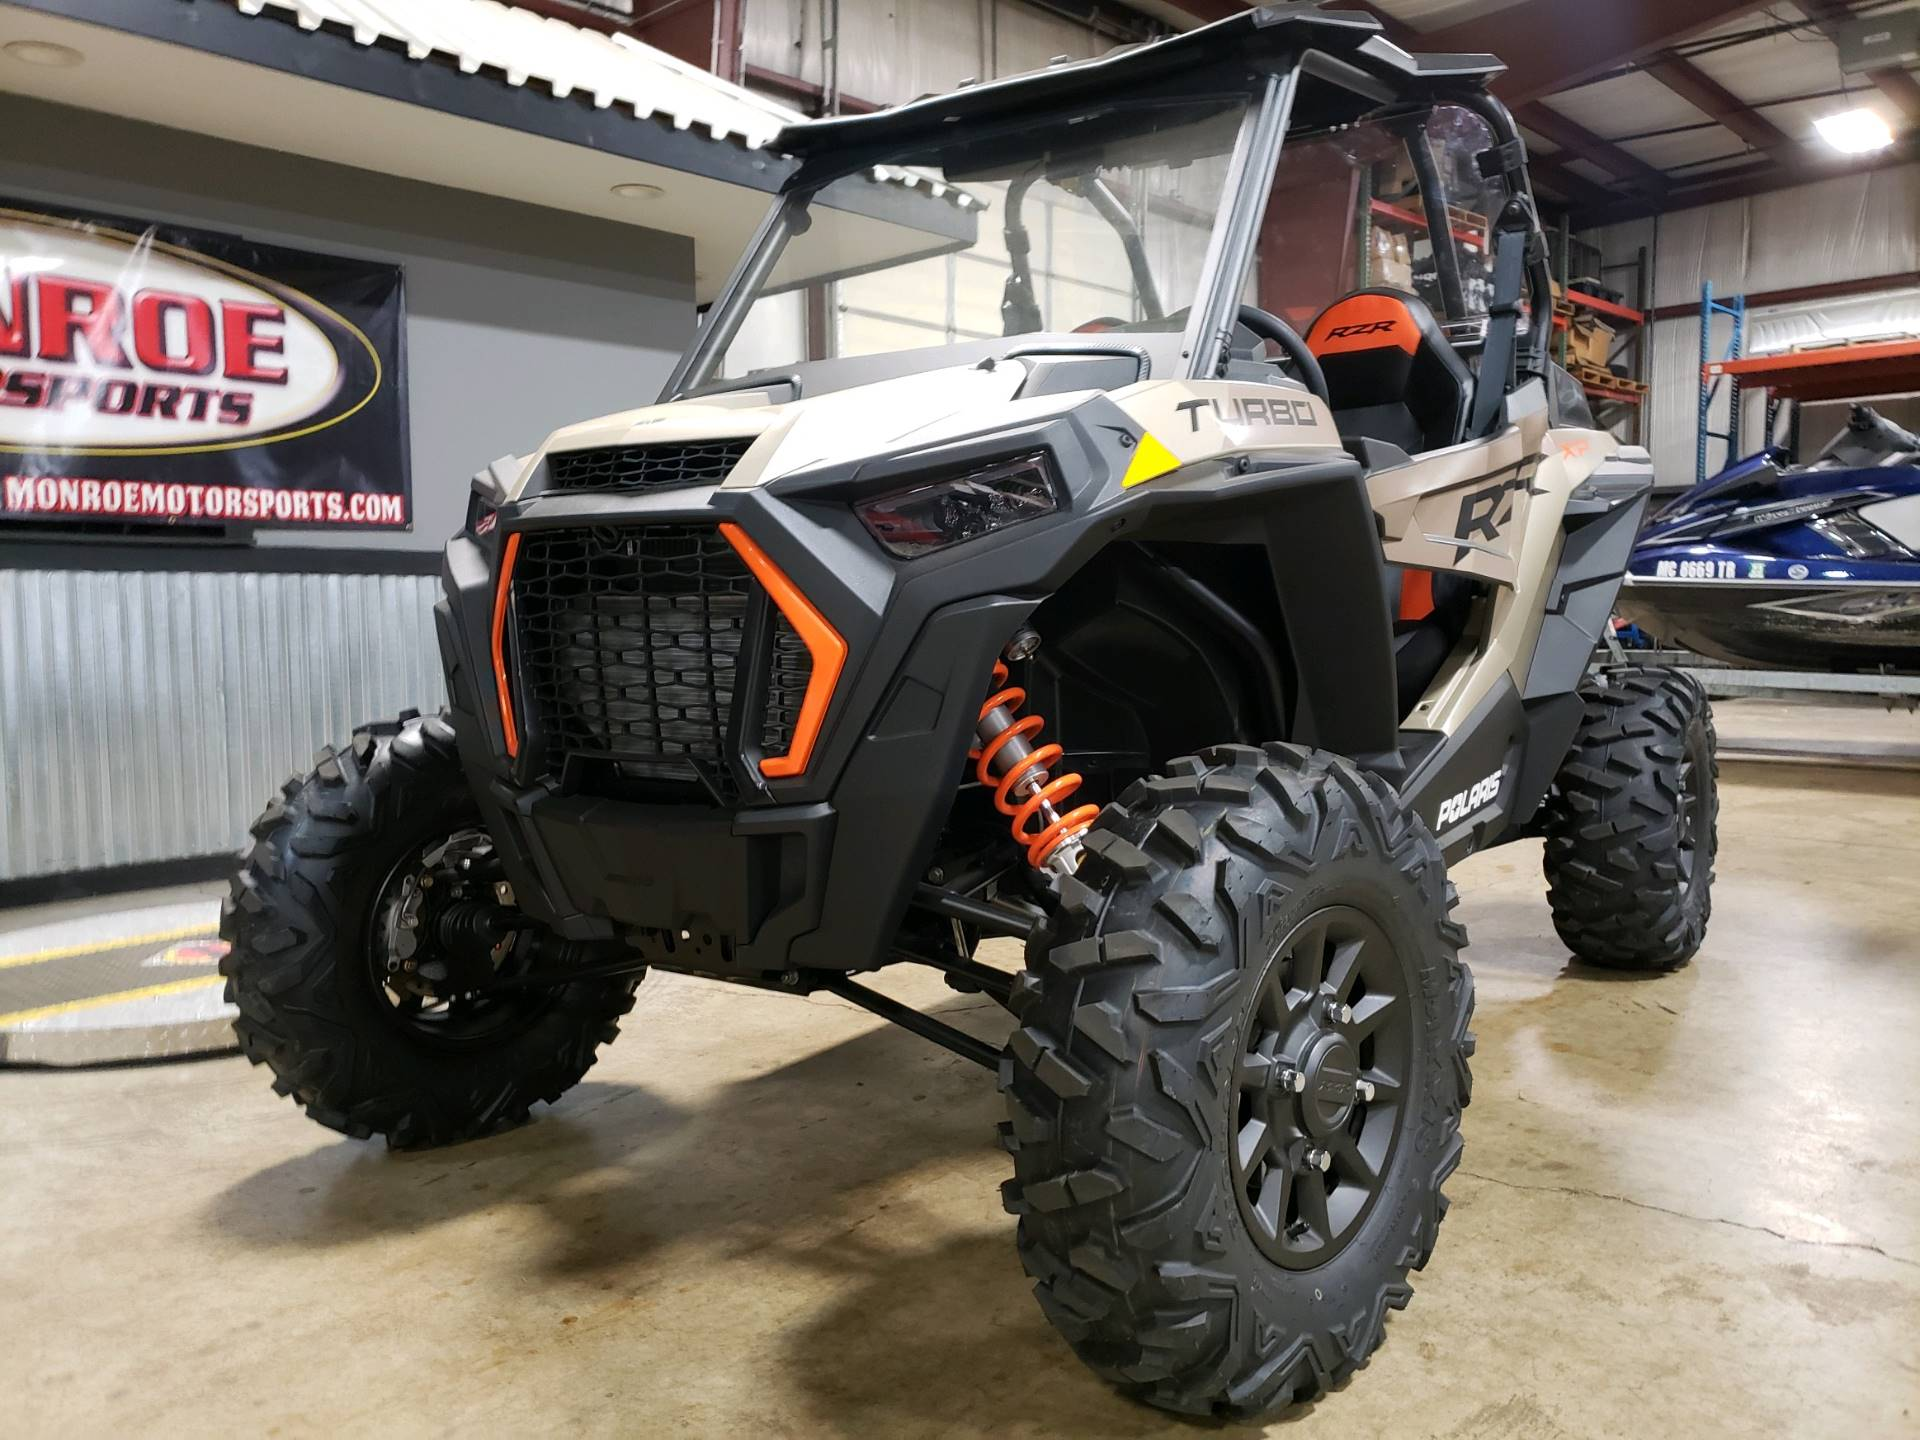 2021 Polaris RZR XP Turbo in Monroe, Michigan - Photo 2